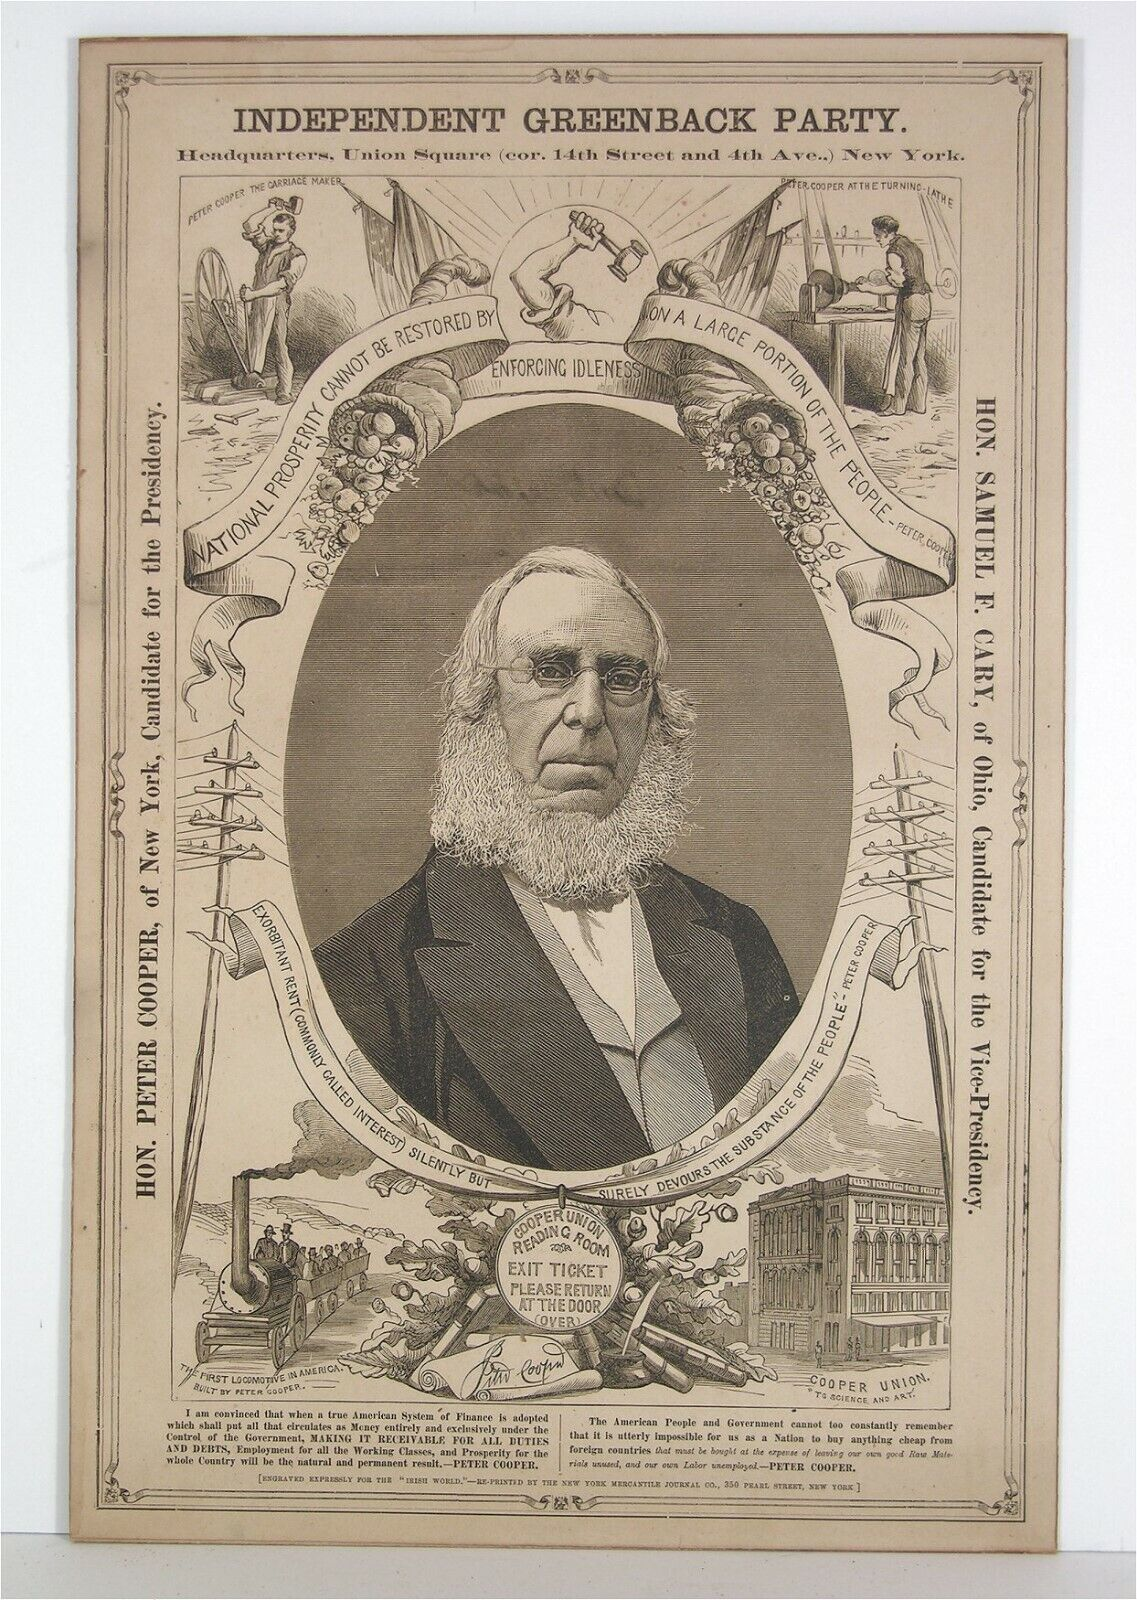 1876 PETER COOPER GREENBACK PARTY PRESIDENTIAL CAMPAIGN BANNER BROADSIDE POSTER